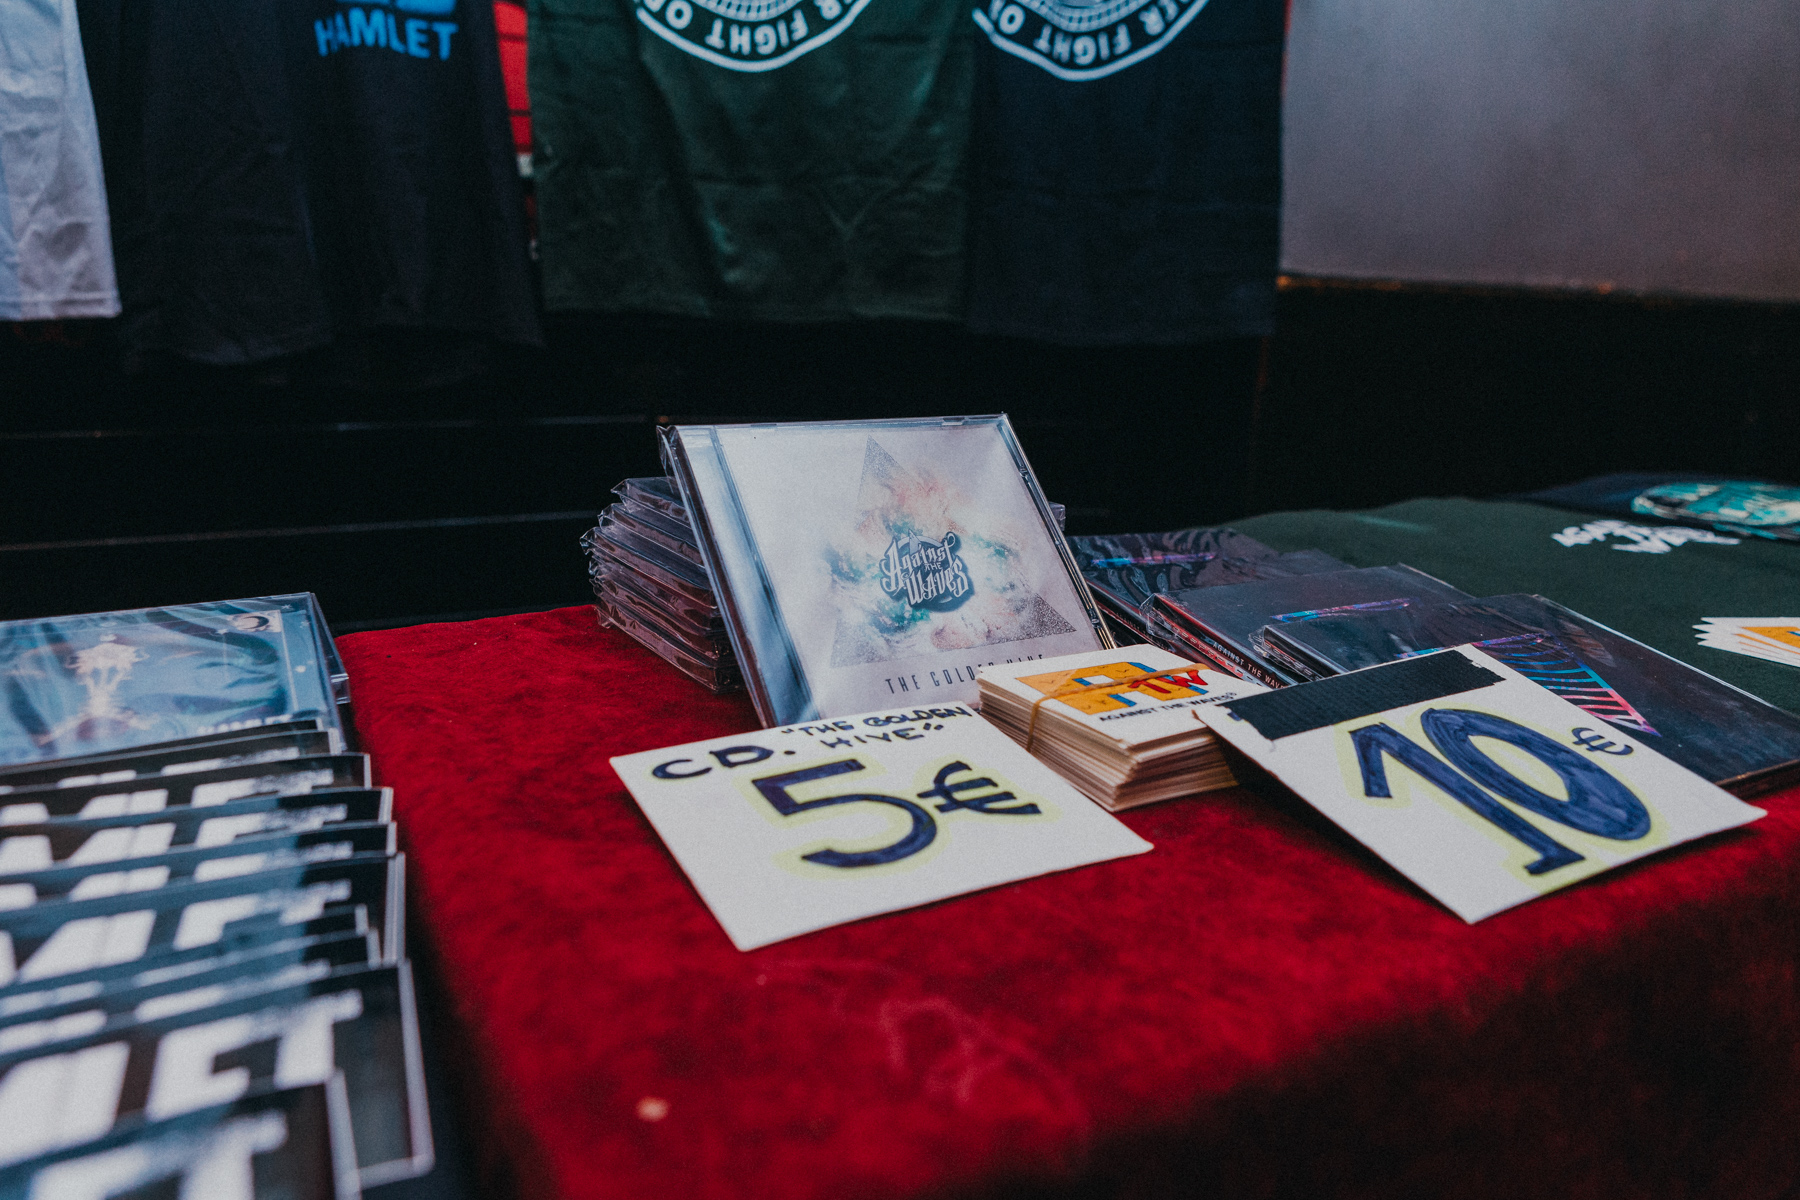 Against The Waves merchandising. I love the fact that they have some of the coolest designs you can find actually!